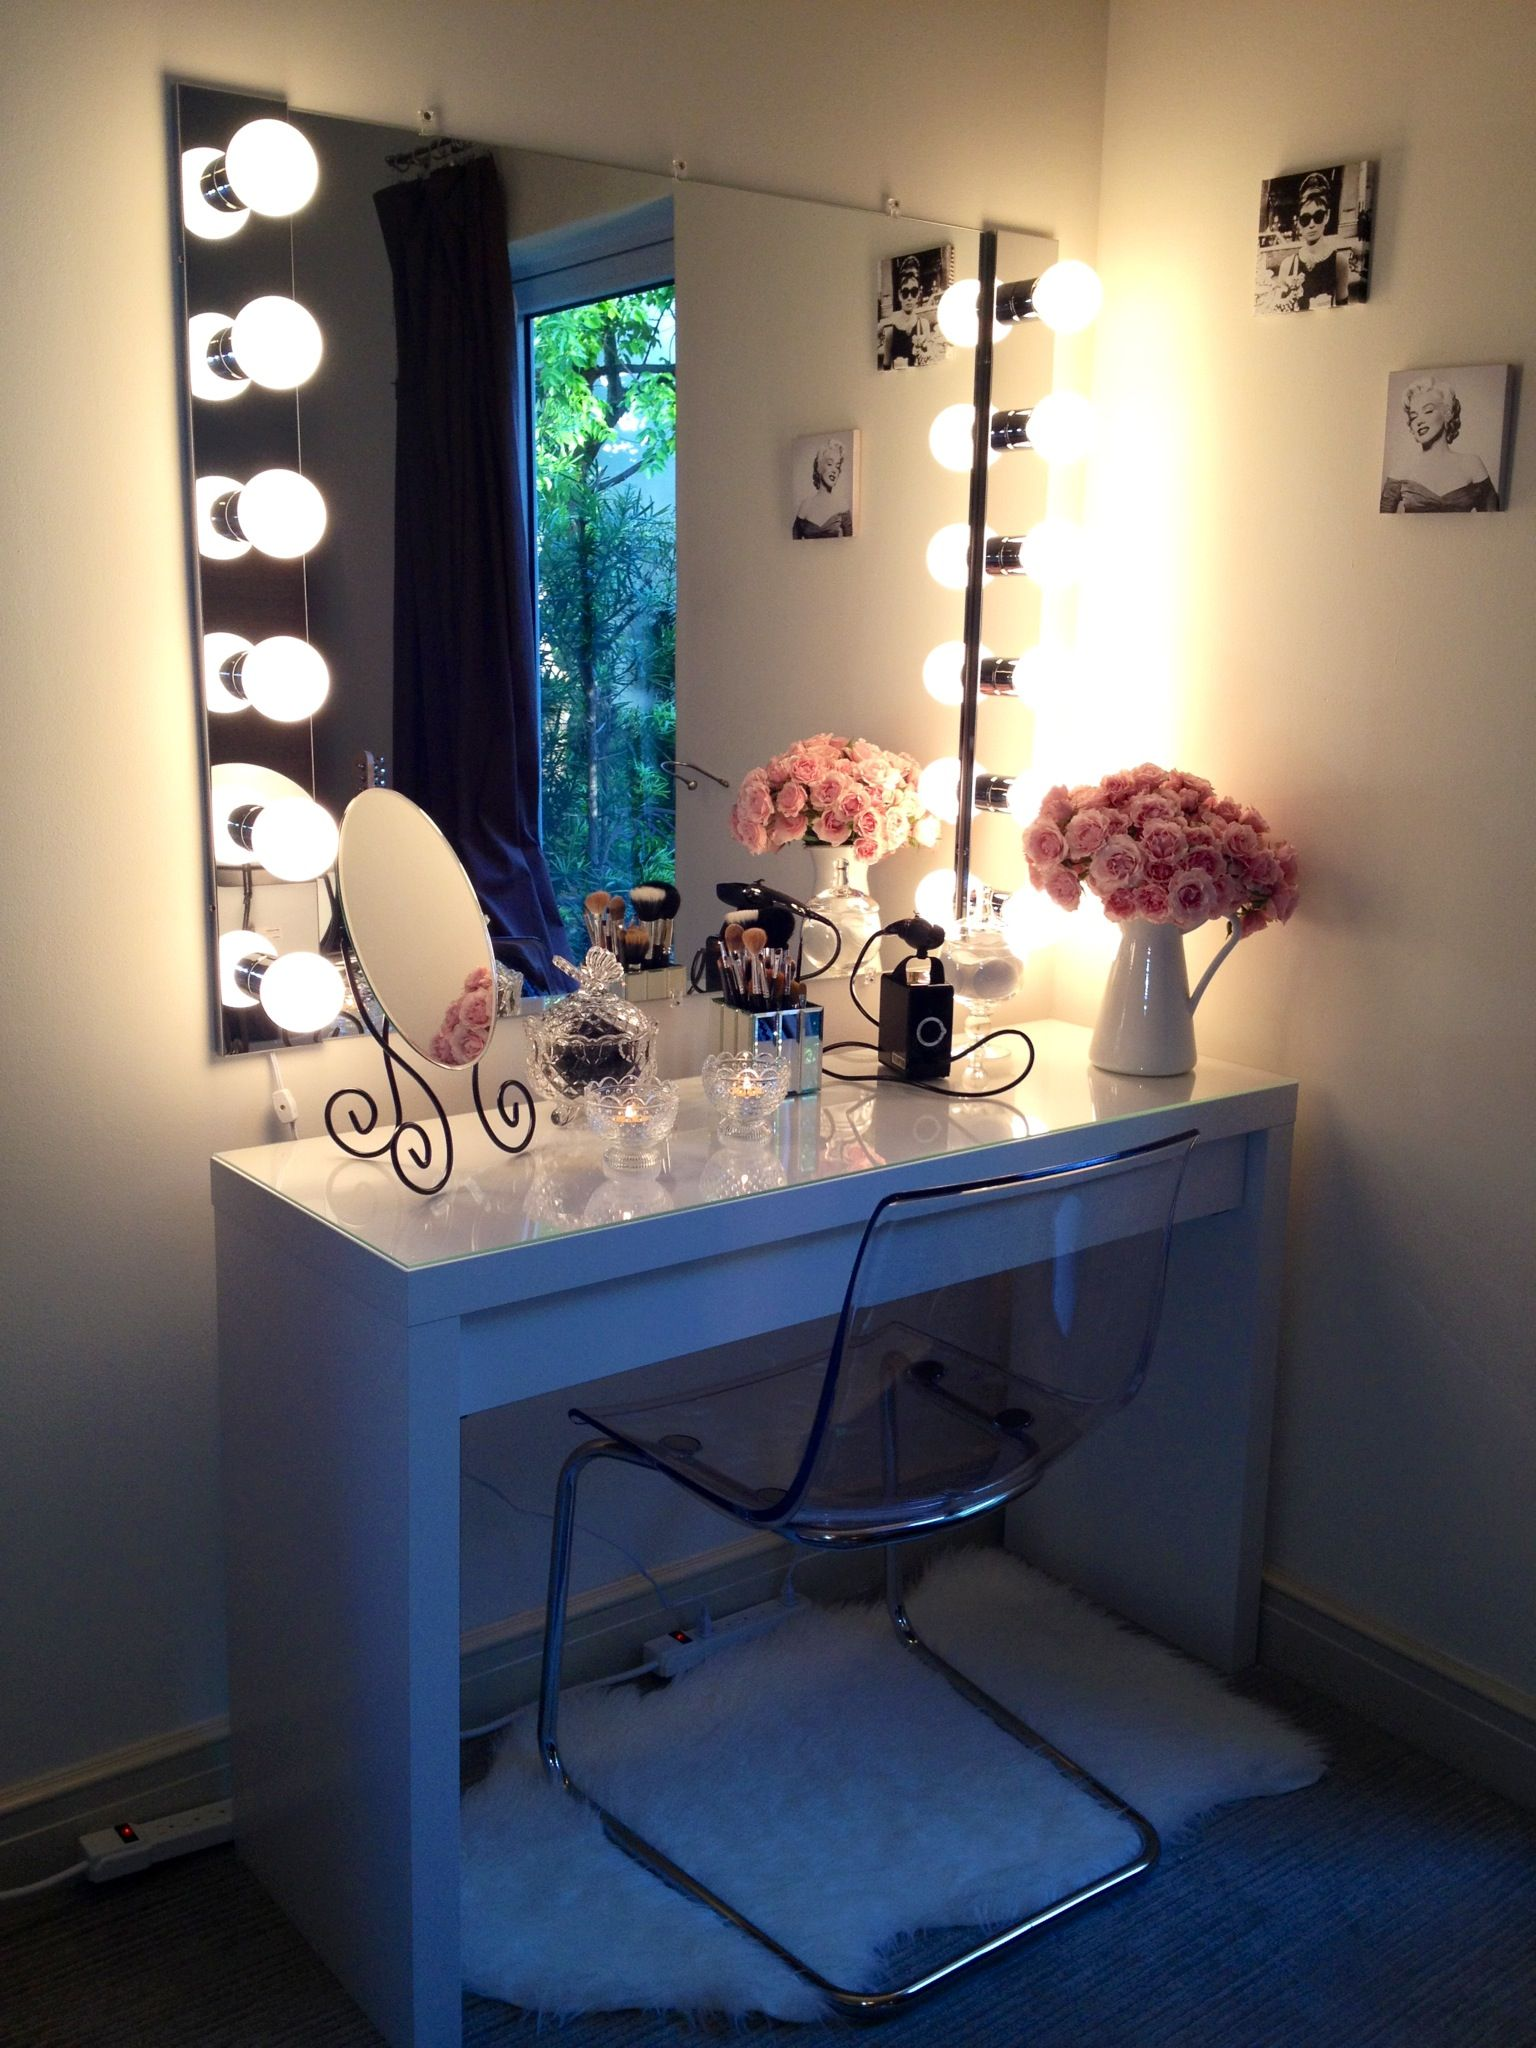 IKEA Malm dressing table makeup vanity and